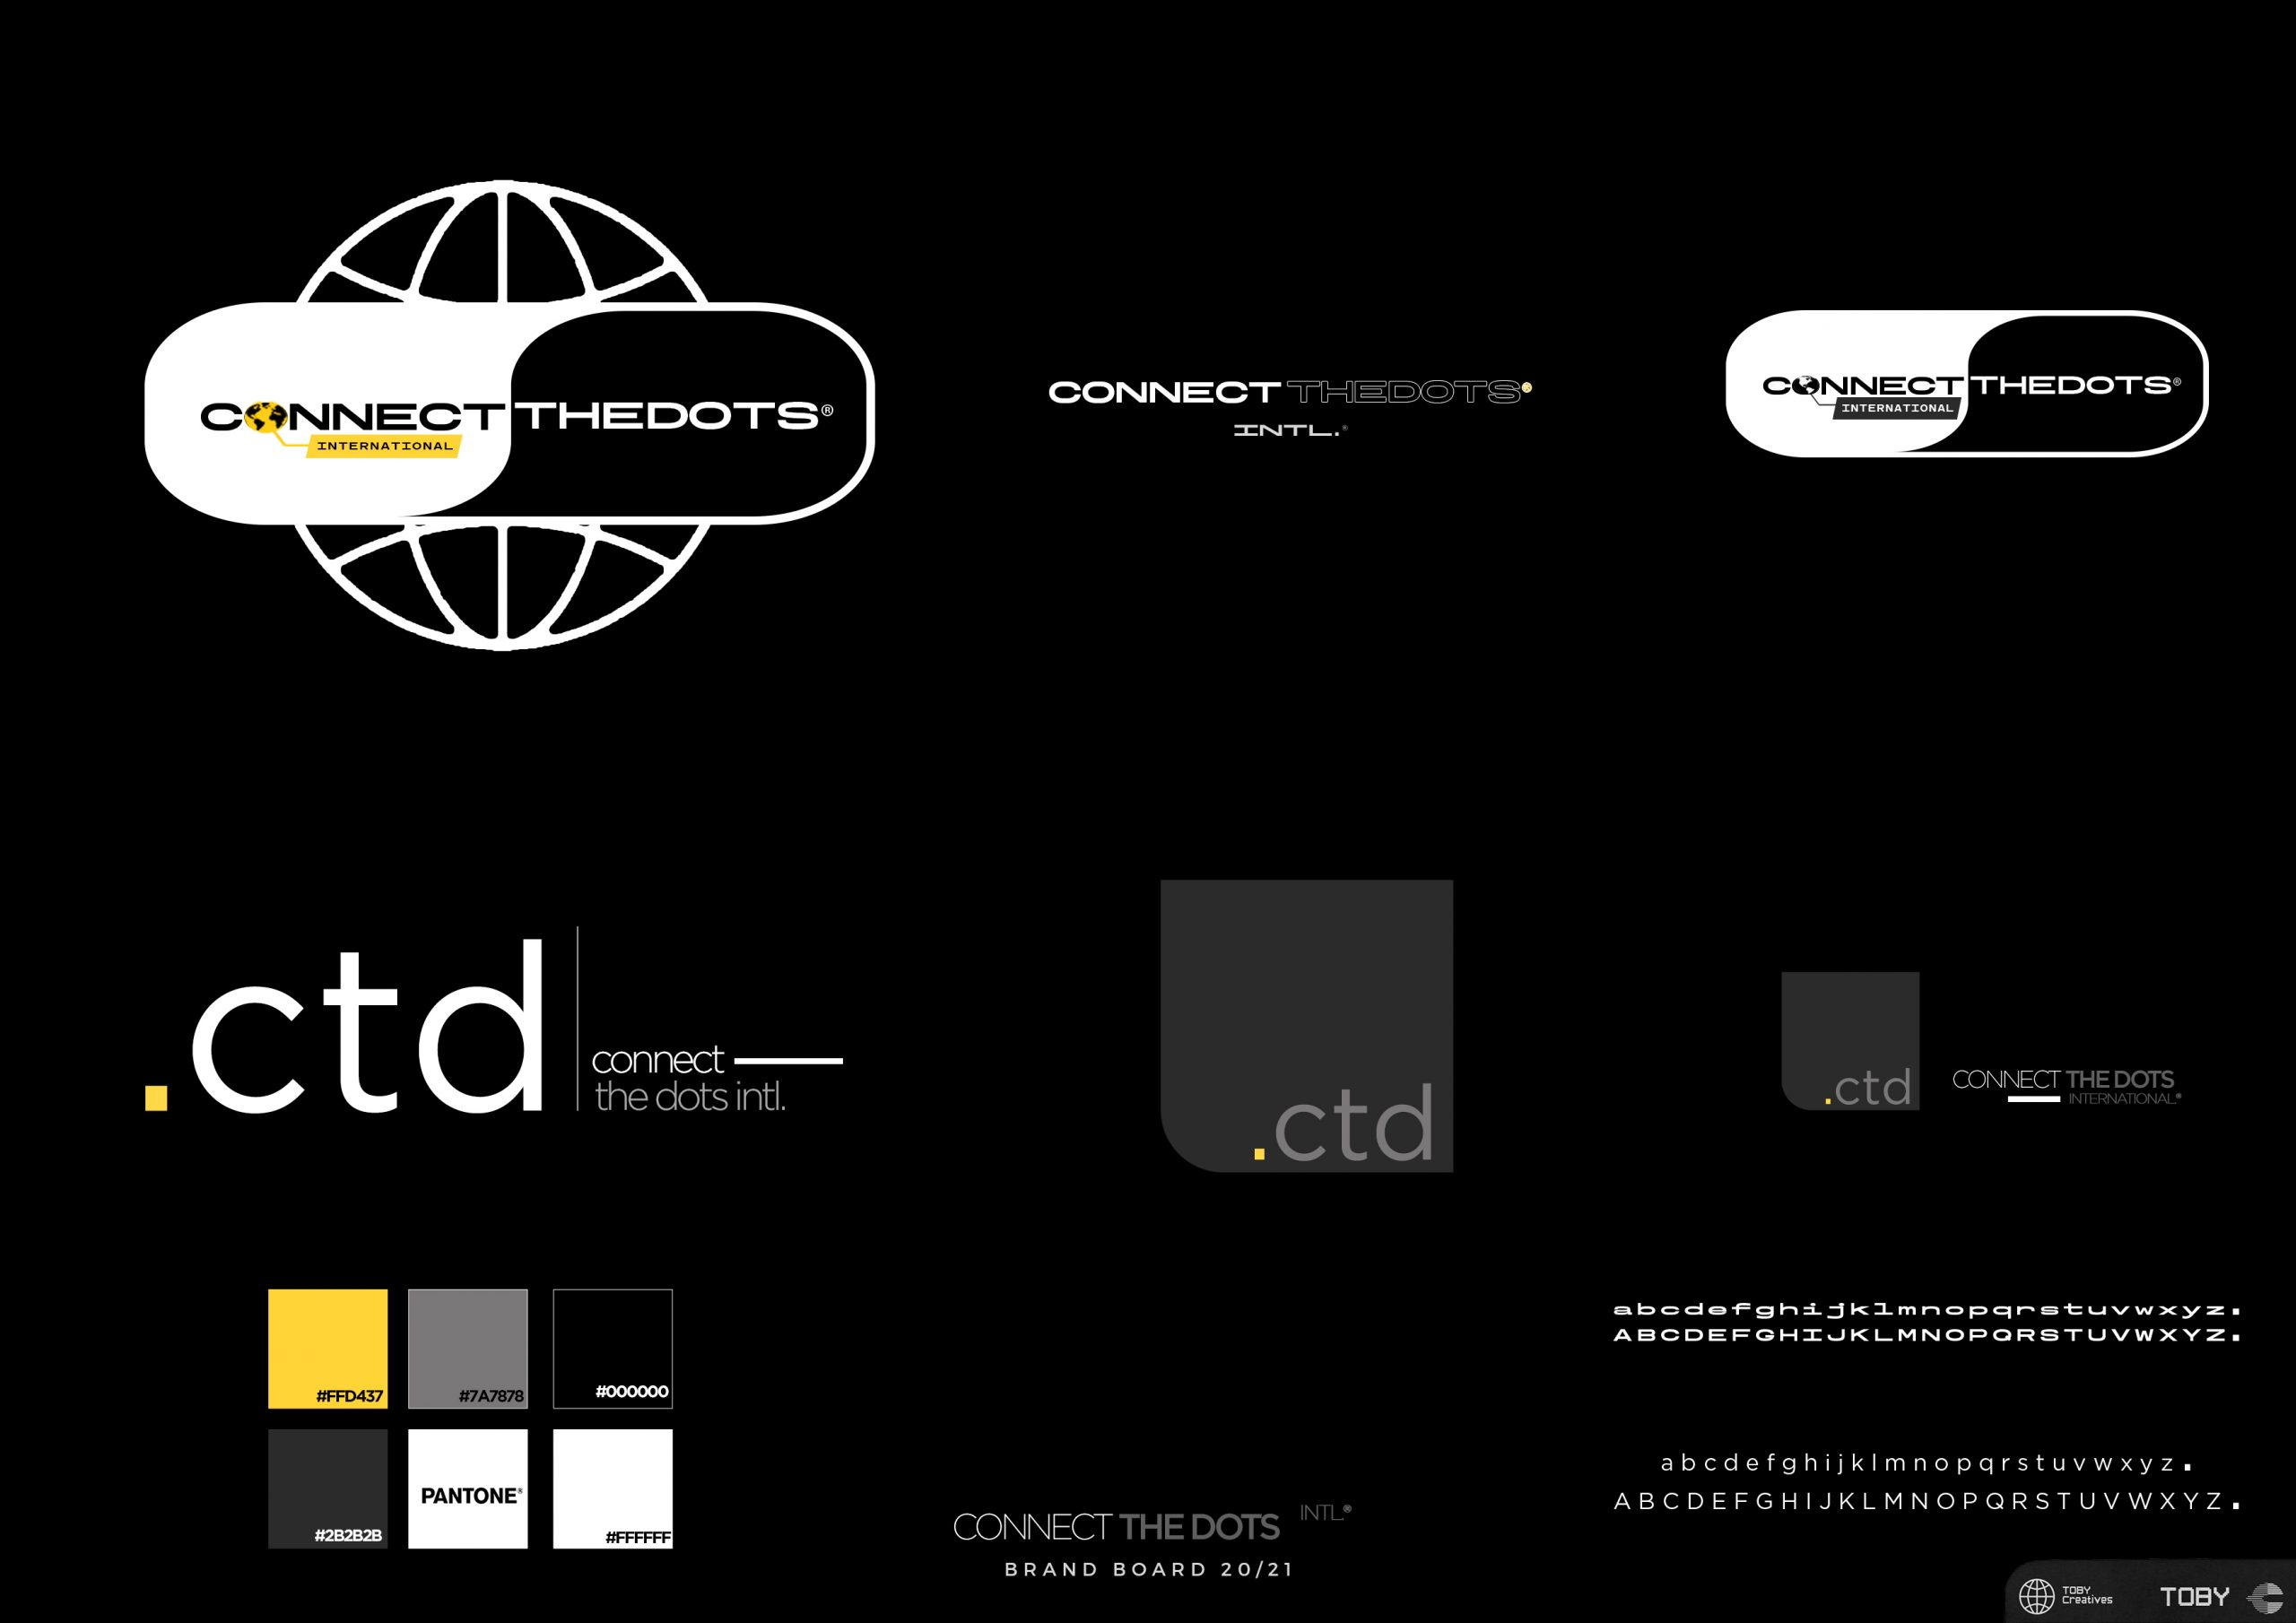 Connect The Dots Re-brand Board